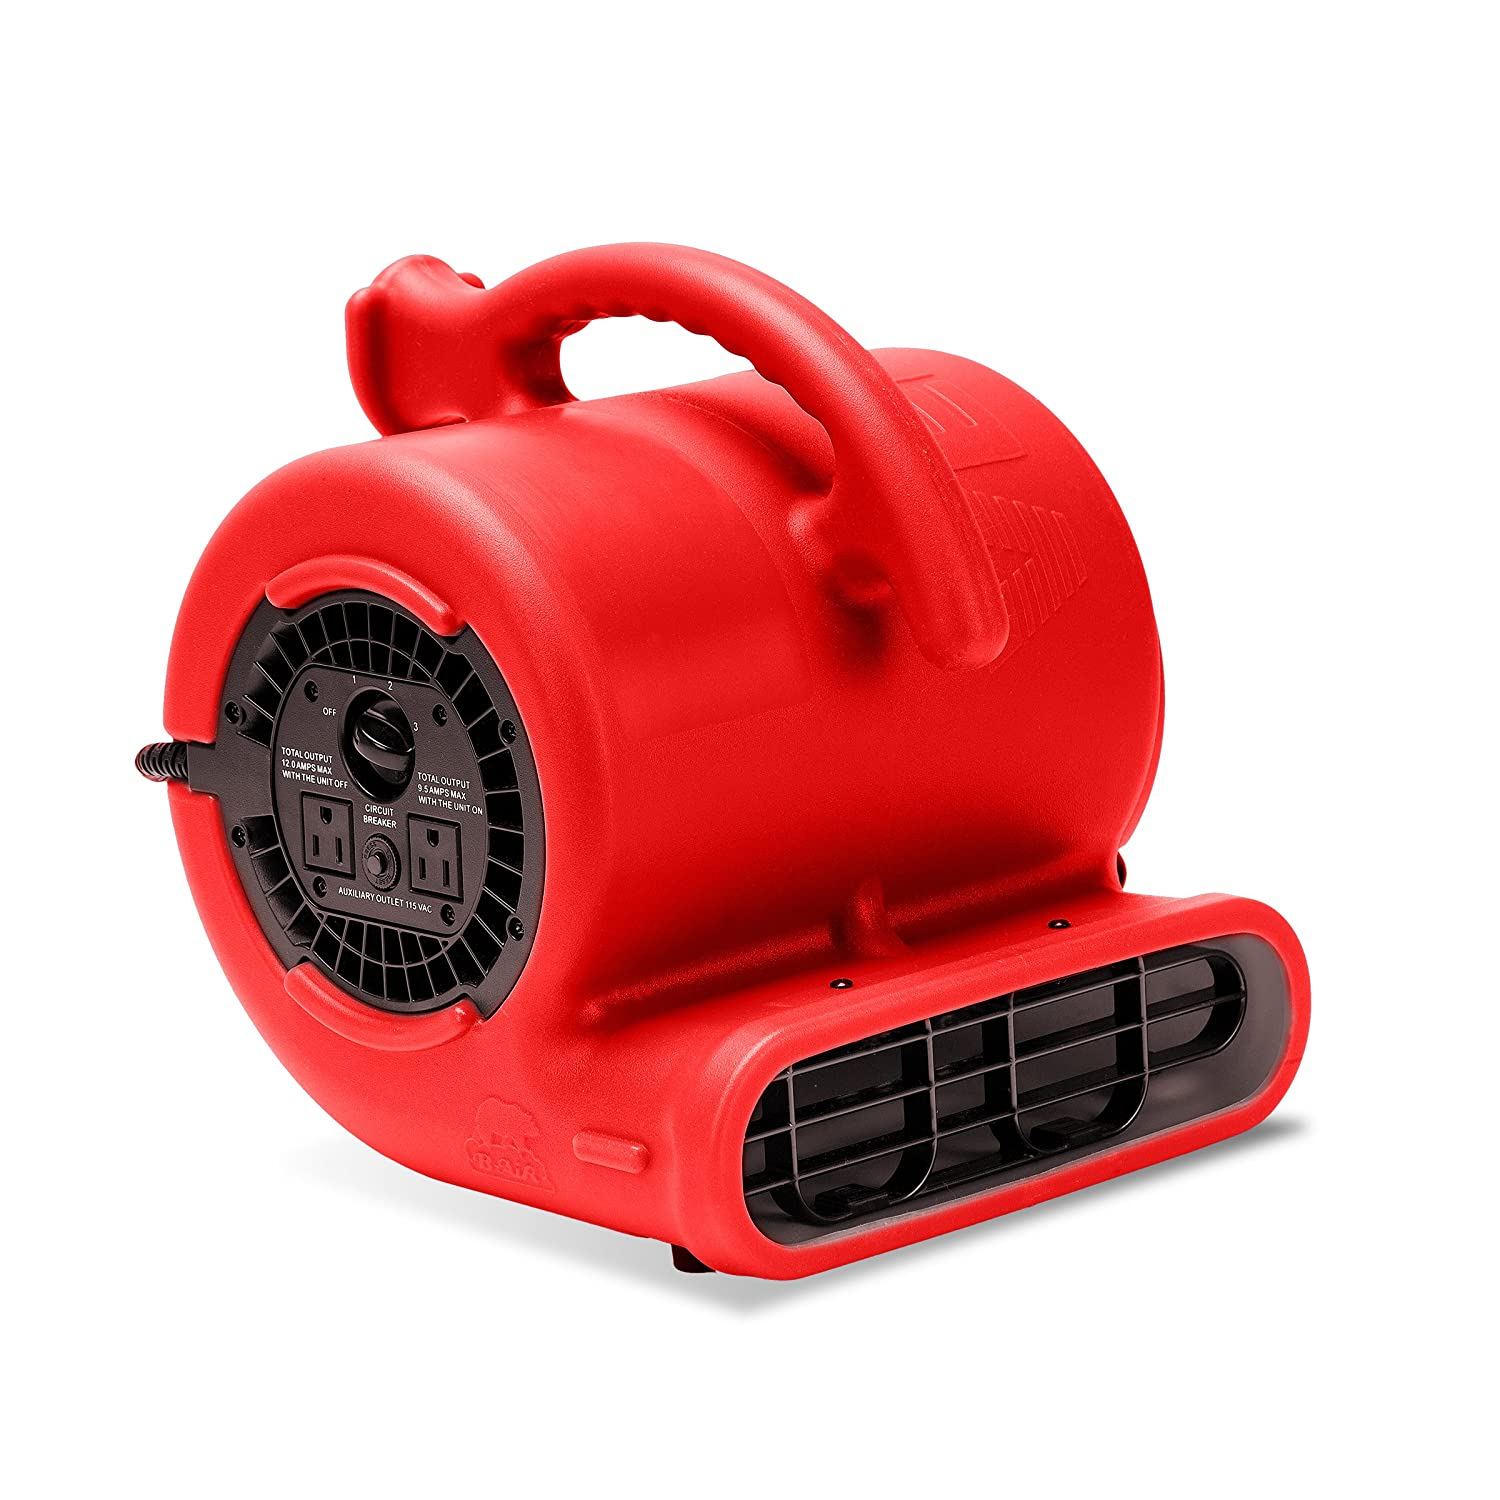 B-Air VP-25 1/4 HP 900 CFM Air Mover for Water Damage Restoration Carpet Dryer Floor Blower Fan Home and Plumbing Use, Blue VP-25 BLUE